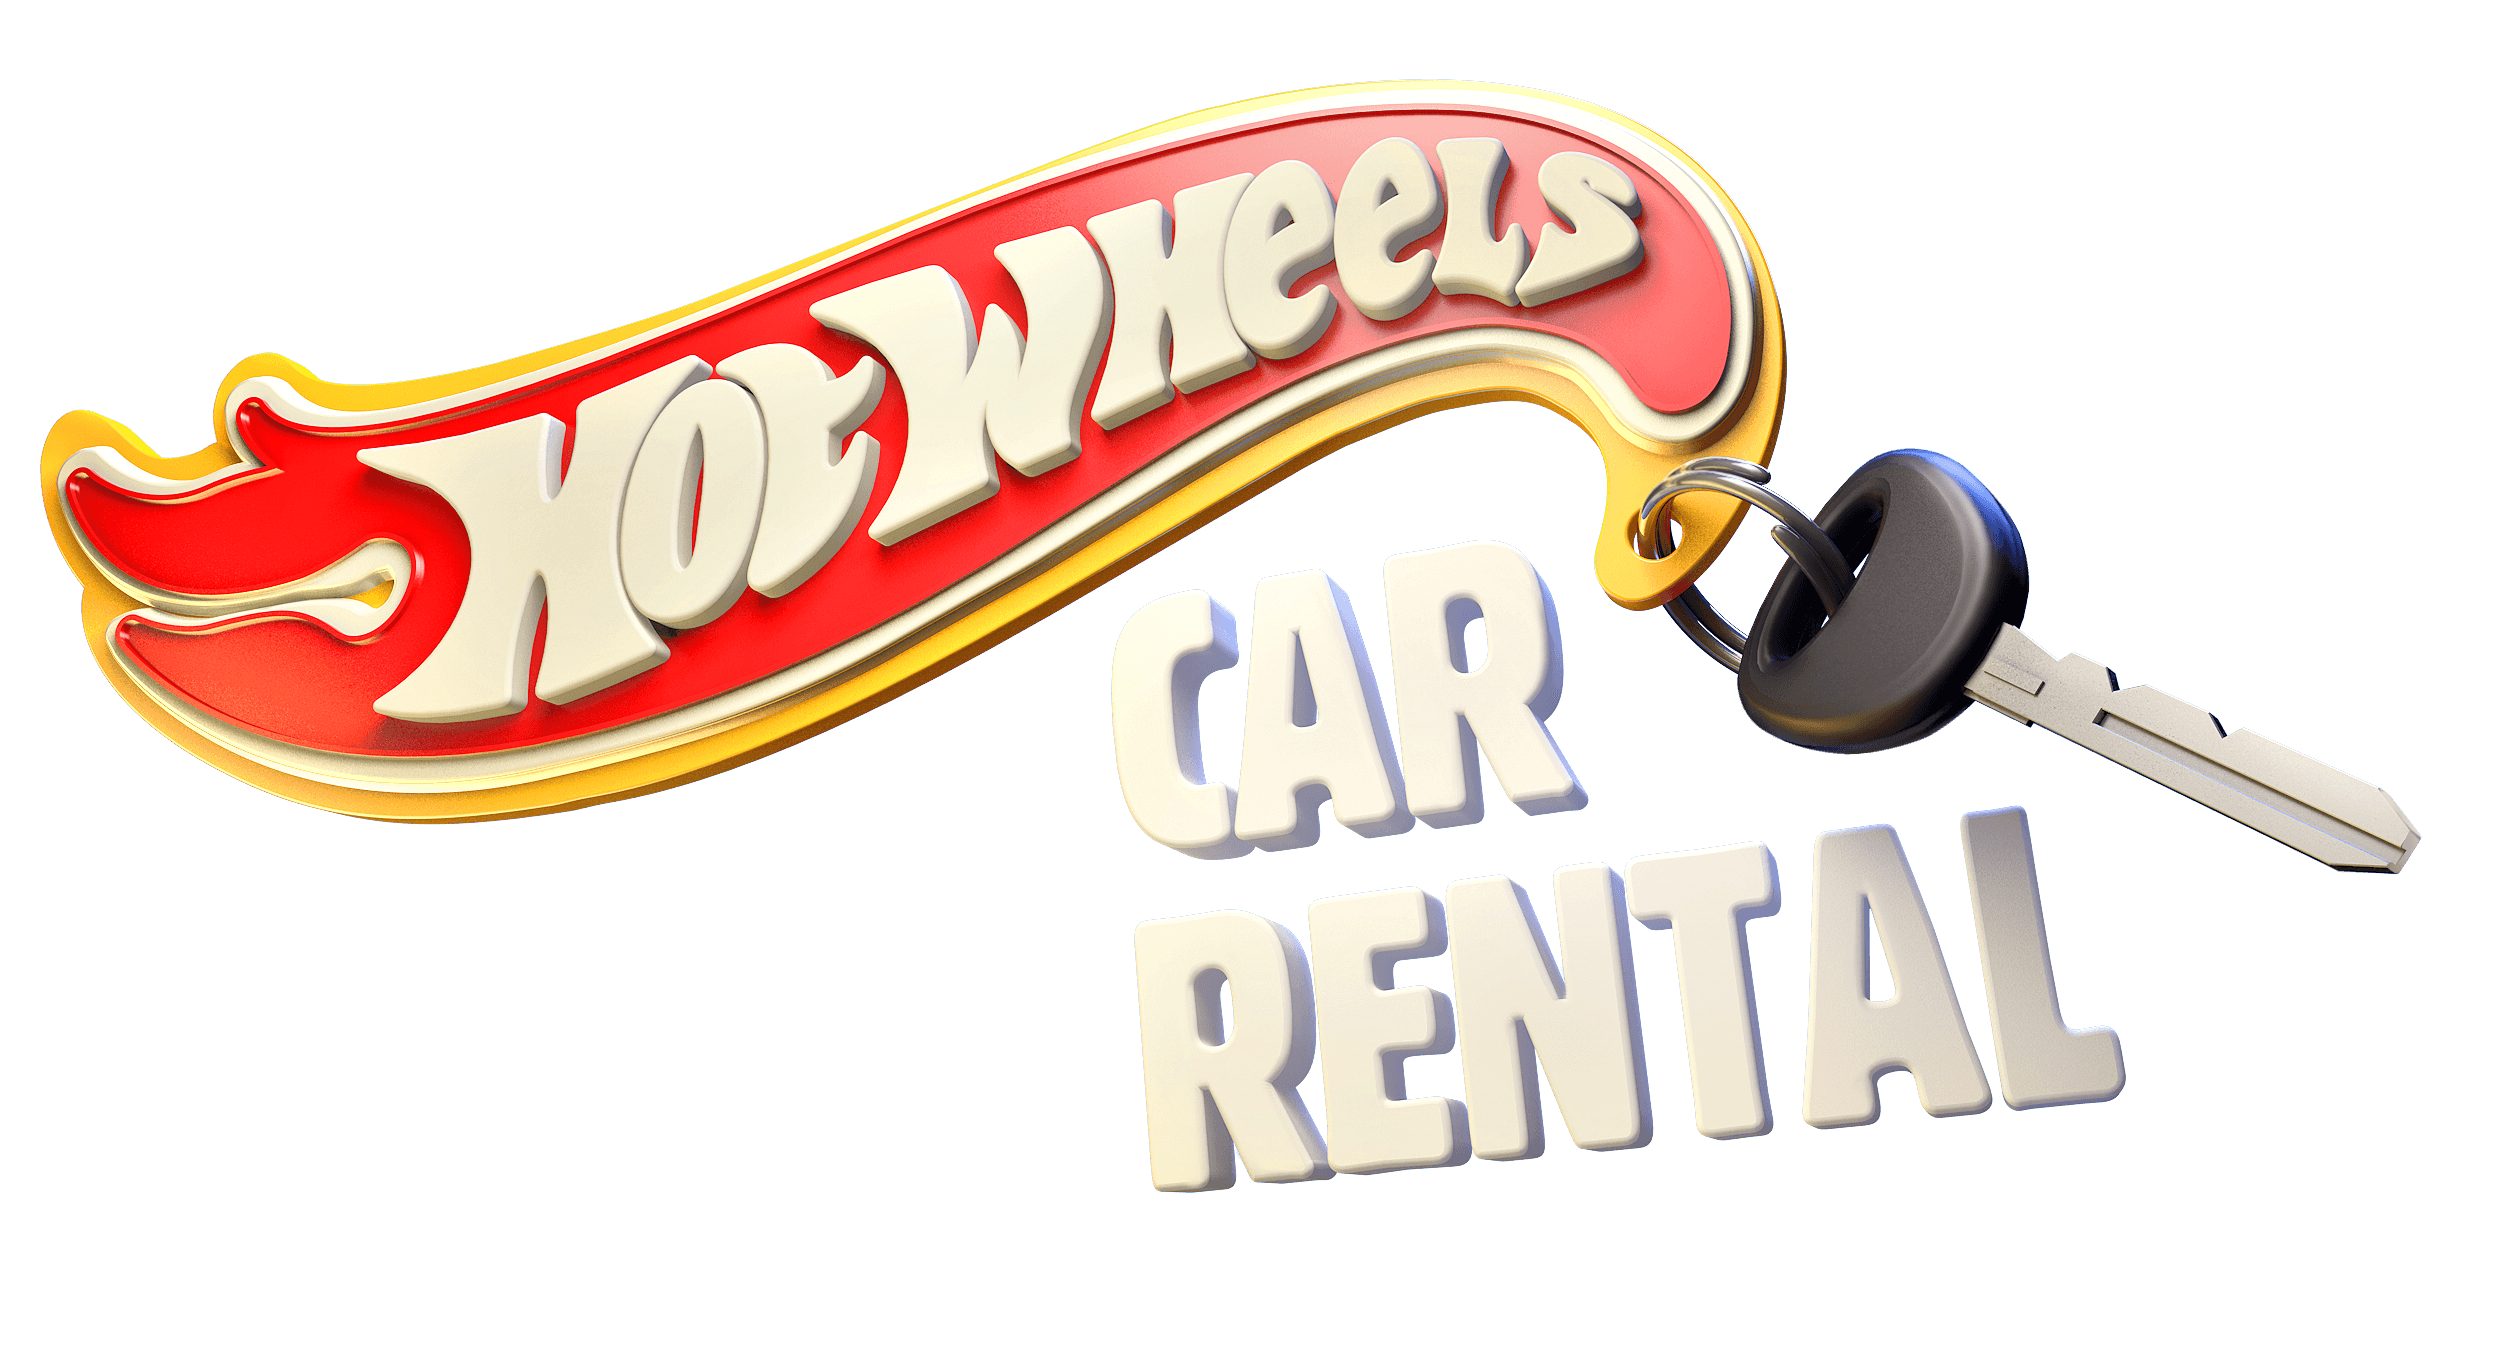 Hot Whells x Europcar – Kids Car Rental